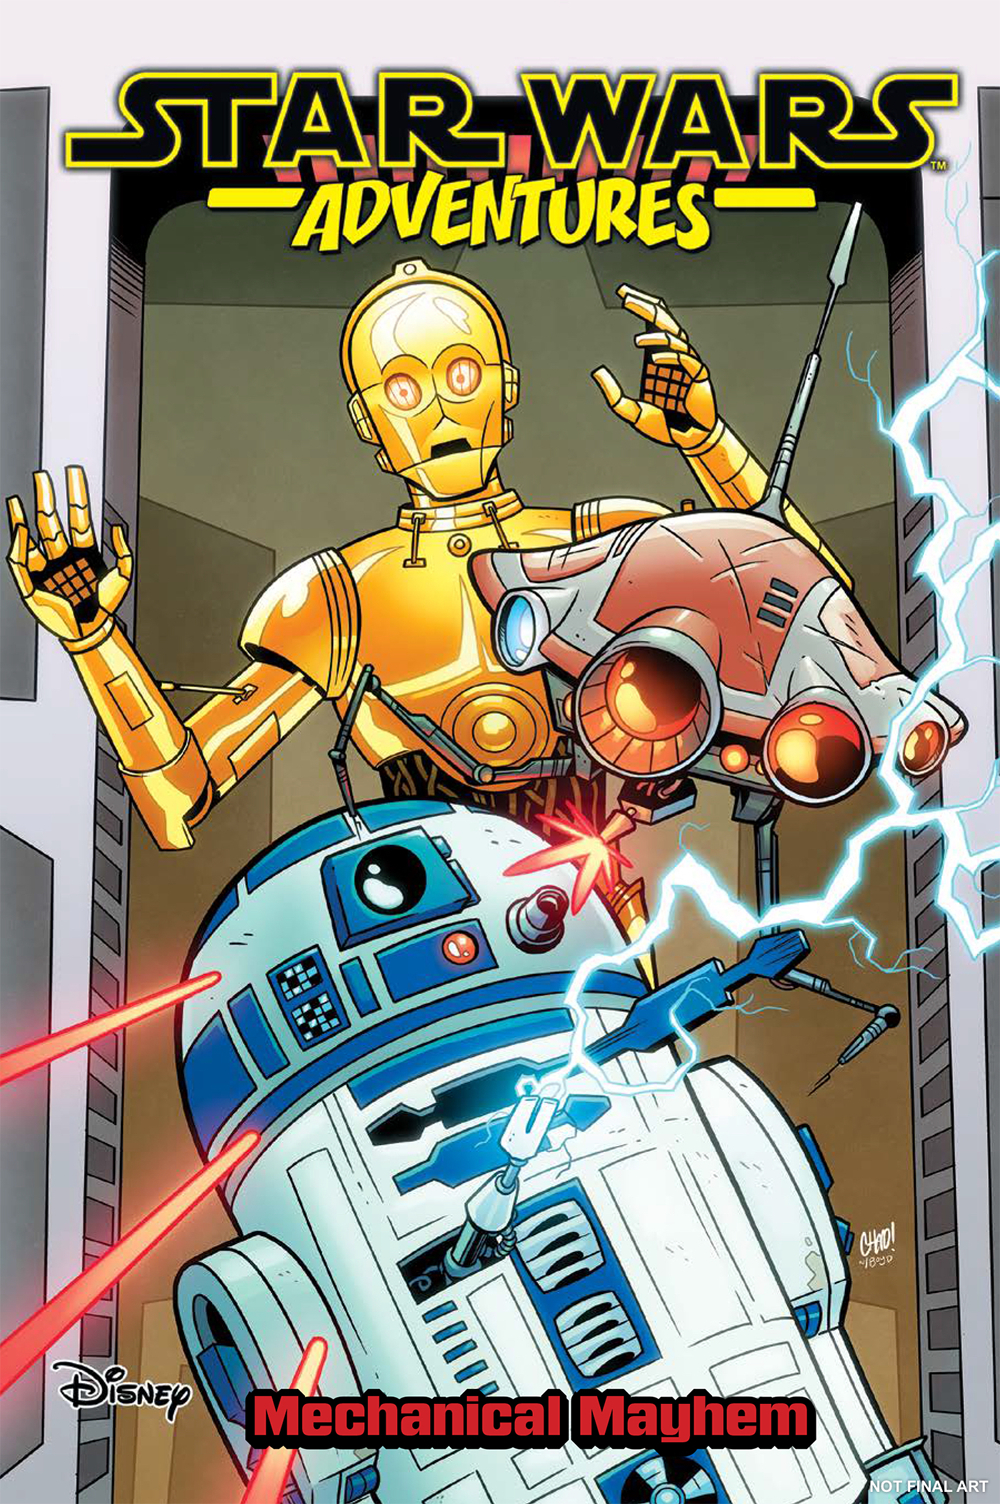 STAR WARS ADVENTURES TP VOL 05 MECHANICAL MAYHEM